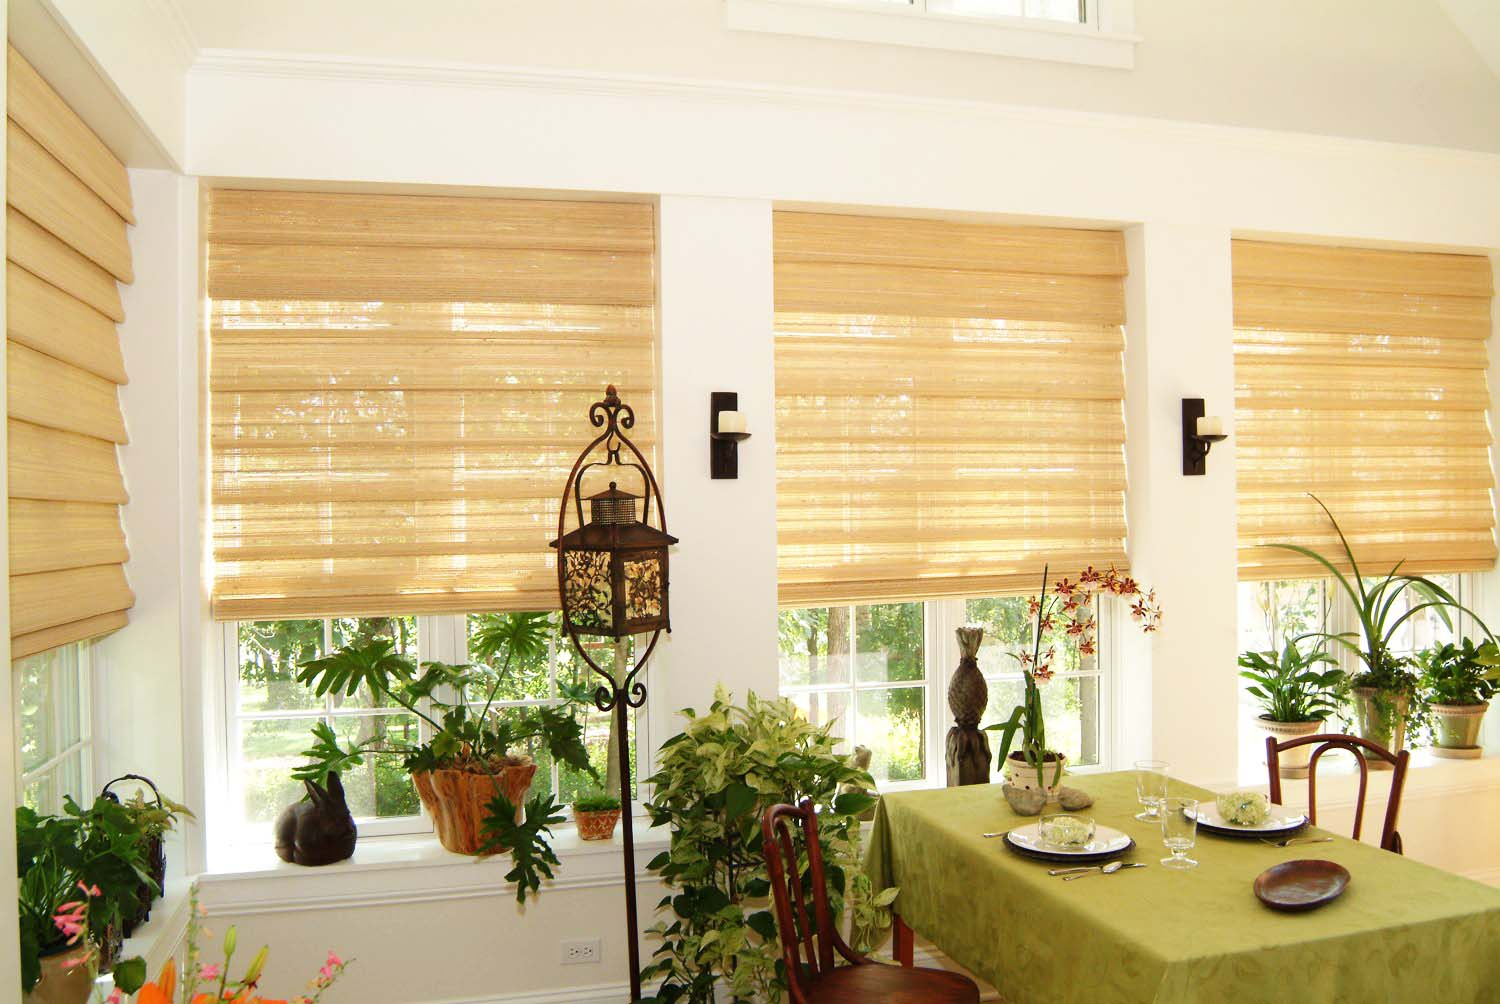 Skylight Shades Lowes | Roll Up Shades Lowes | Lowes Shades